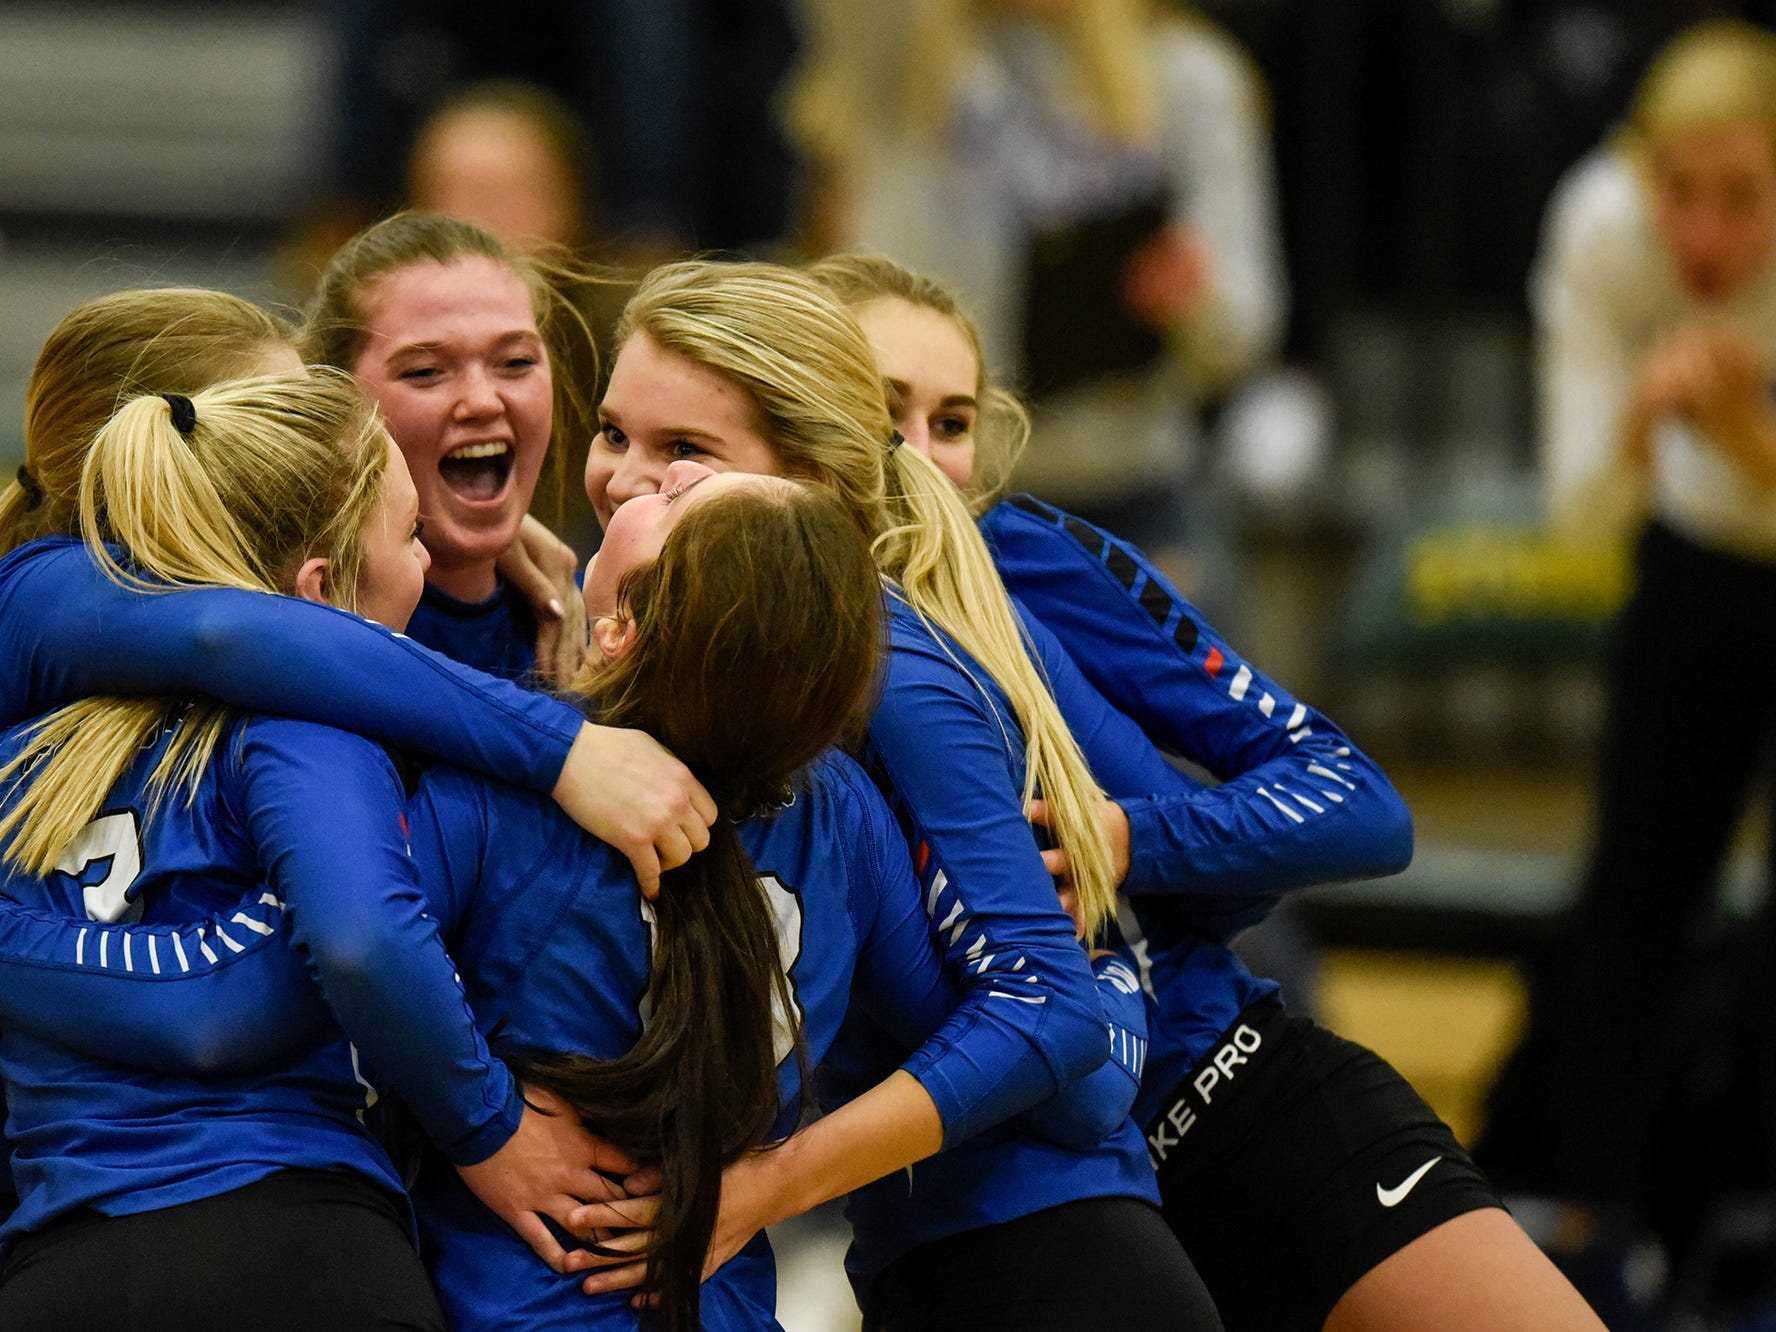 Foley players celebrate a point during the Section 6-2A volleyball semifinals Thursday, Nov. 1, at Sauk Rapids-Rice High School.